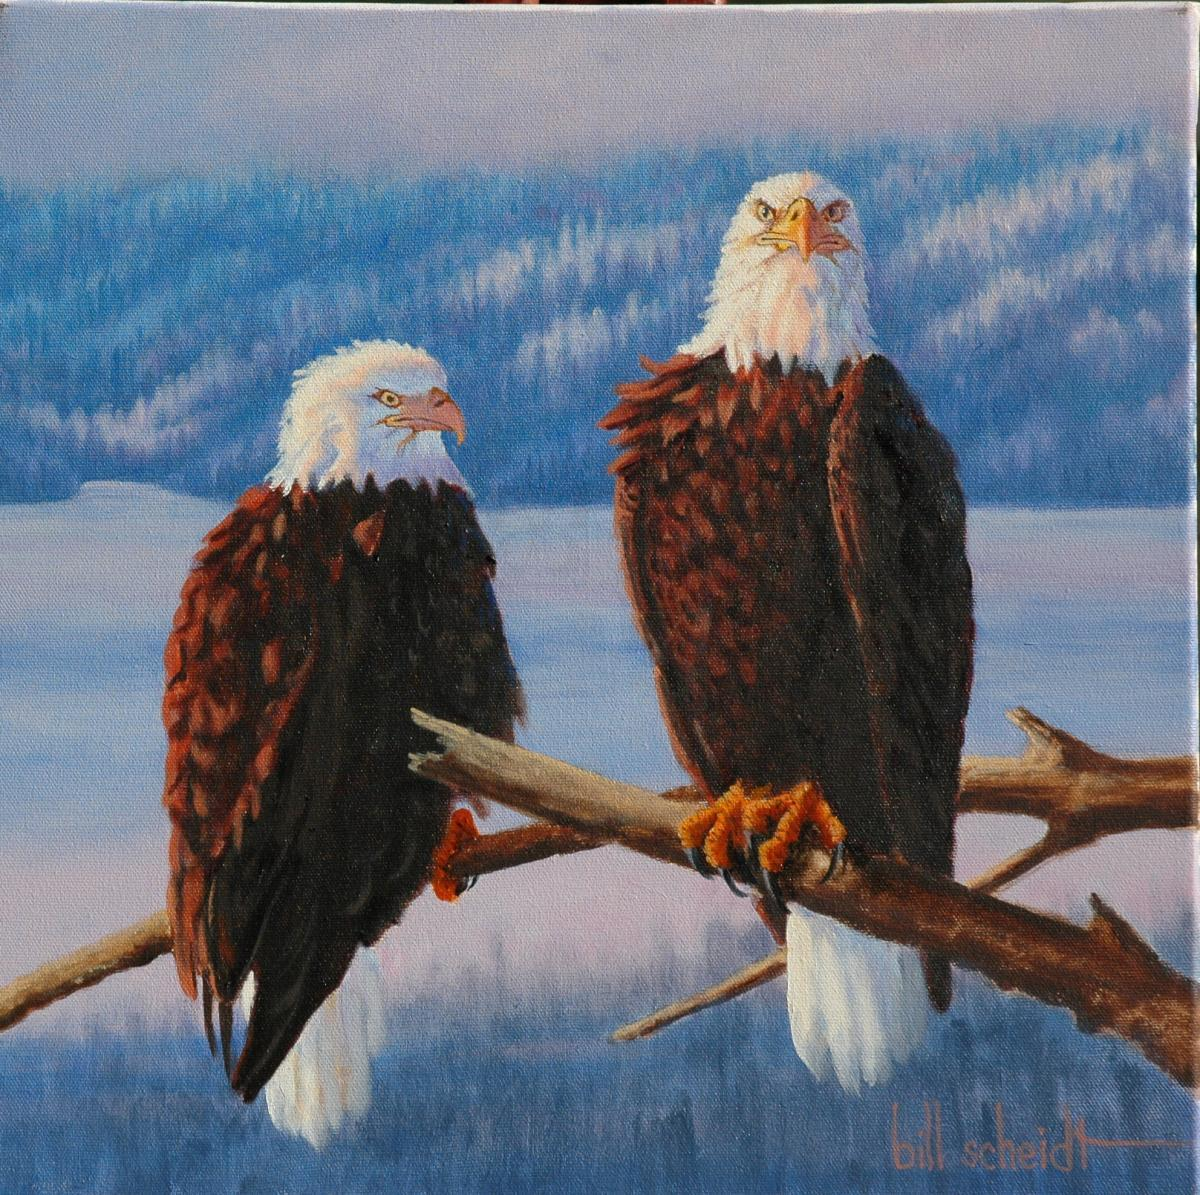 | Wallhanging by Bill Scheidt | Artists for Conservation